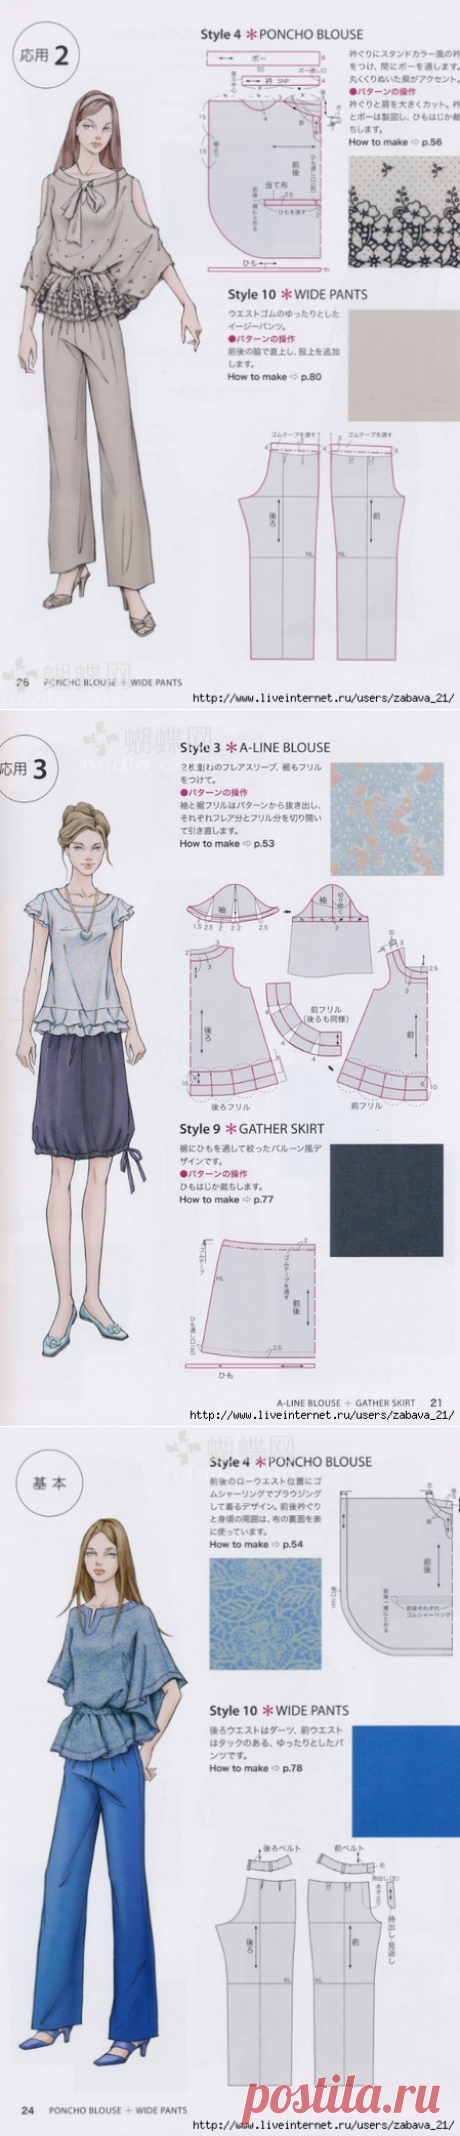 PATTERNS OF BLOUSES. IT IS A LOT OF